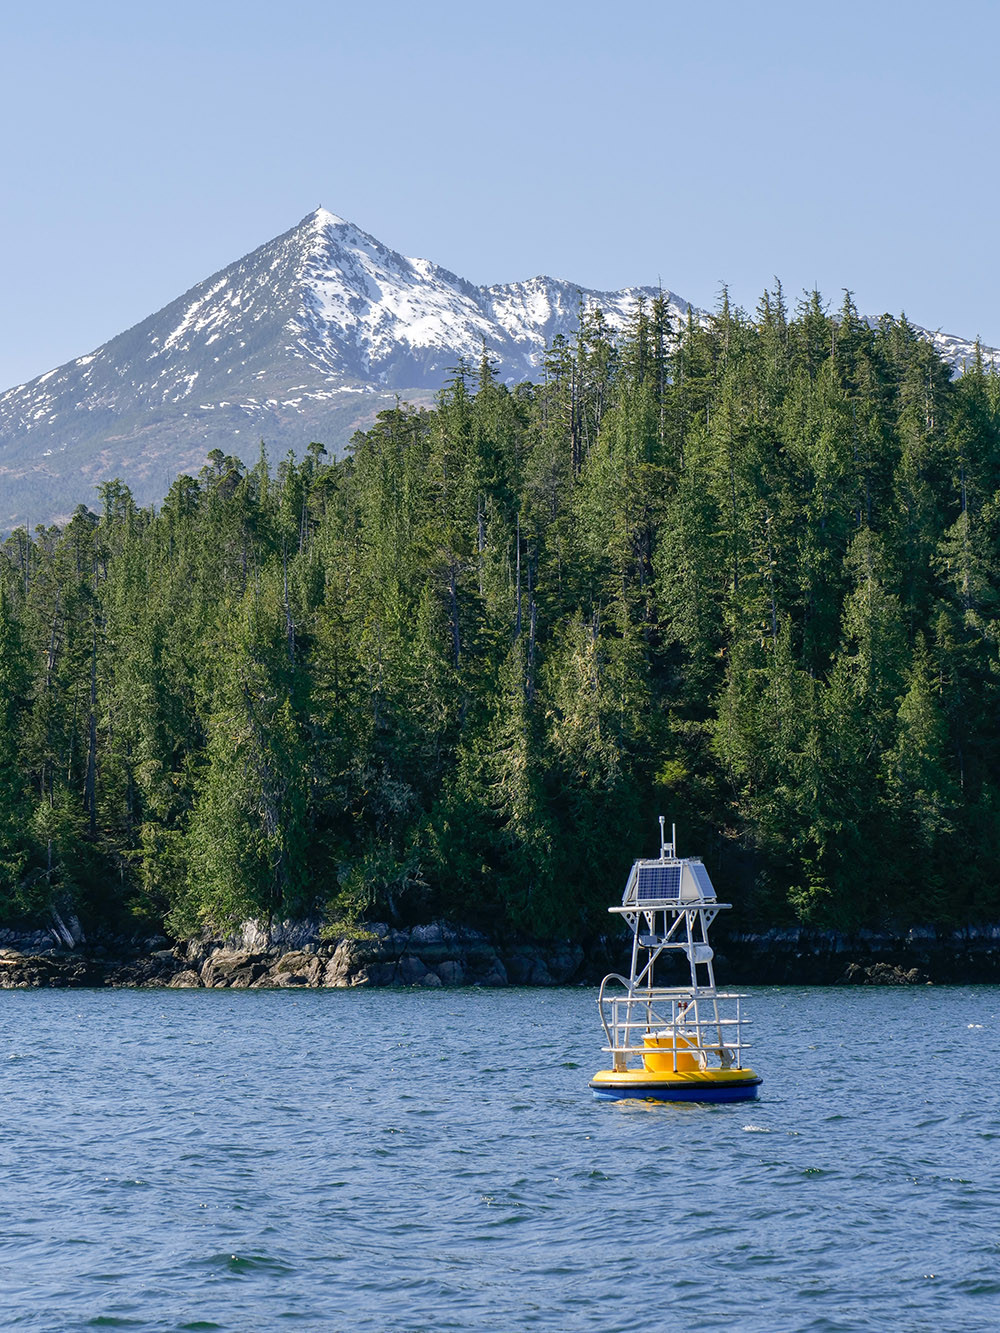 A large yellow buoy floats in the water in front of an island covered in spruce trees with a snowy mountain top in the background